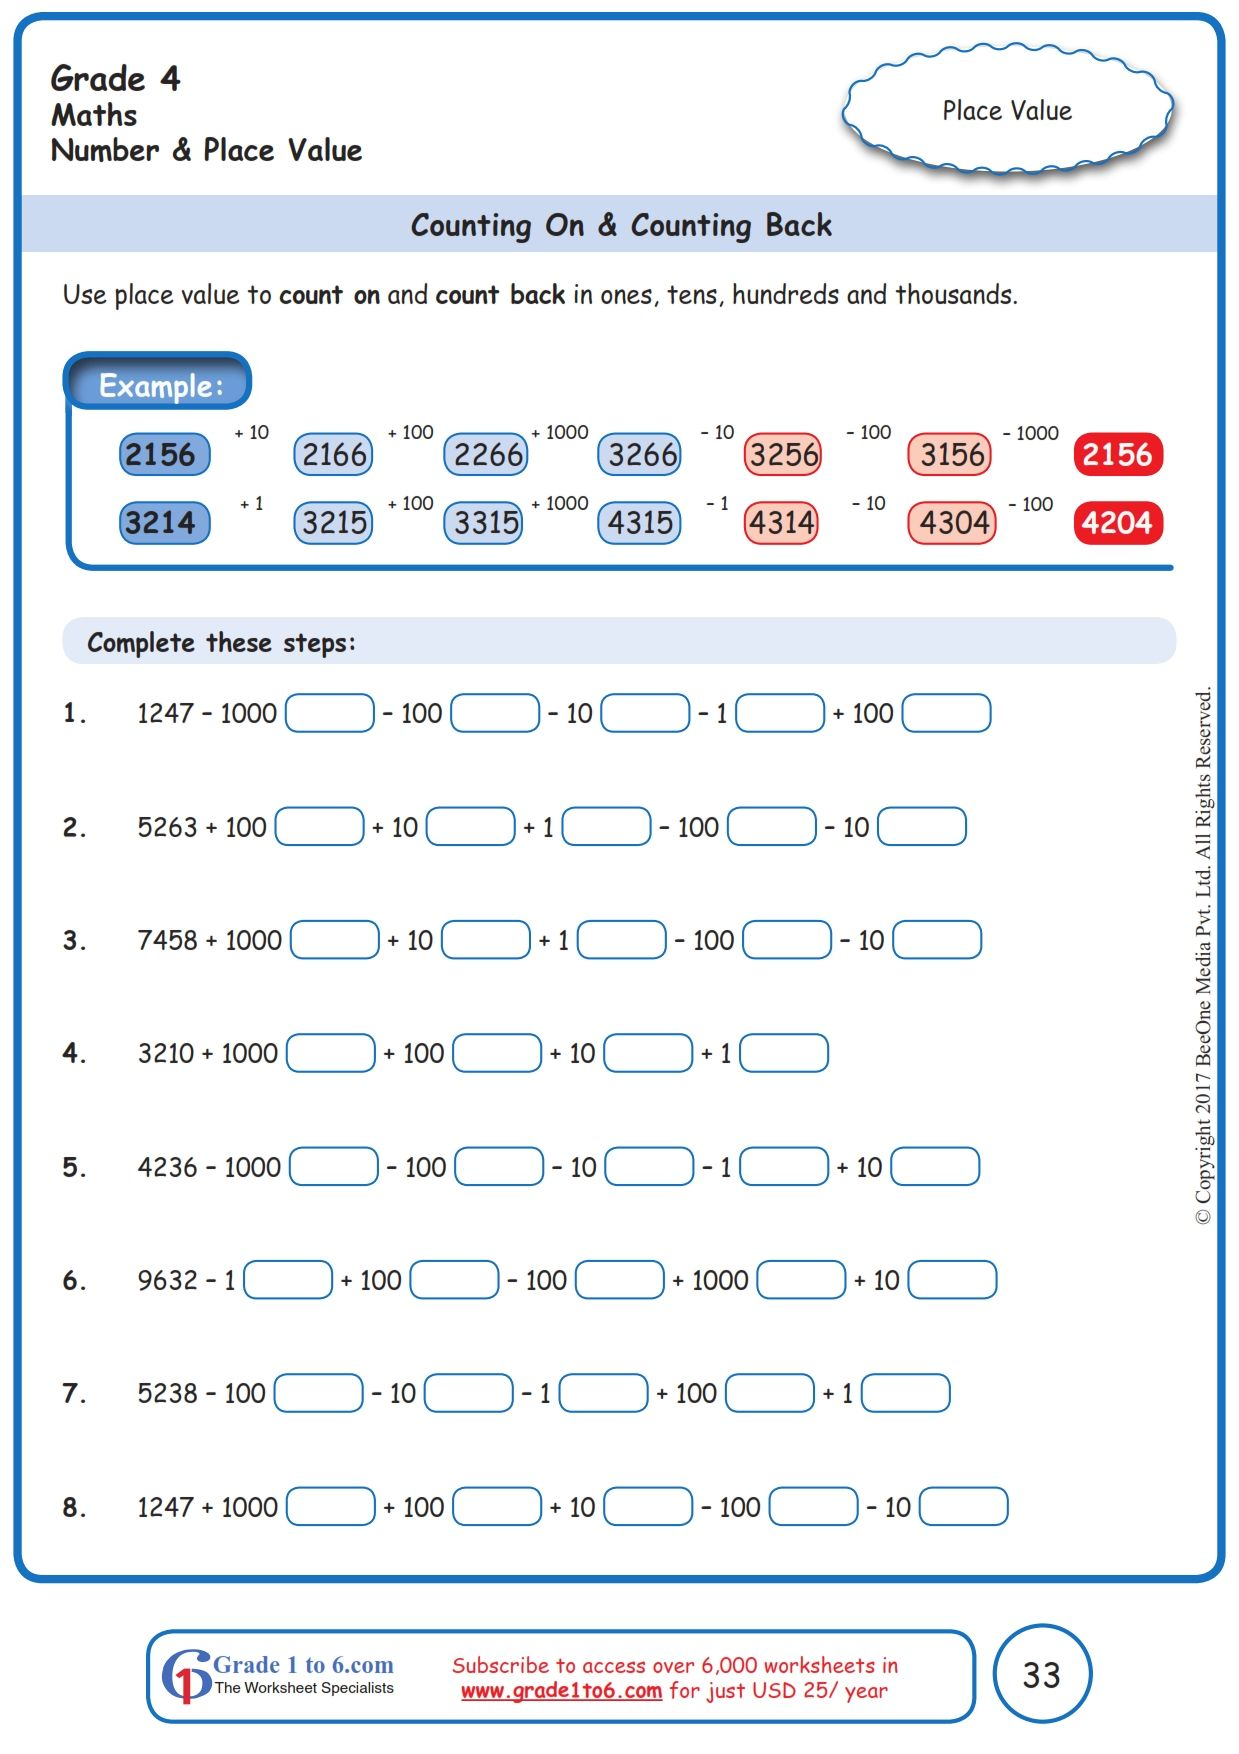 Worksheet Grade 4 Math Counting On Amp Counting Back In